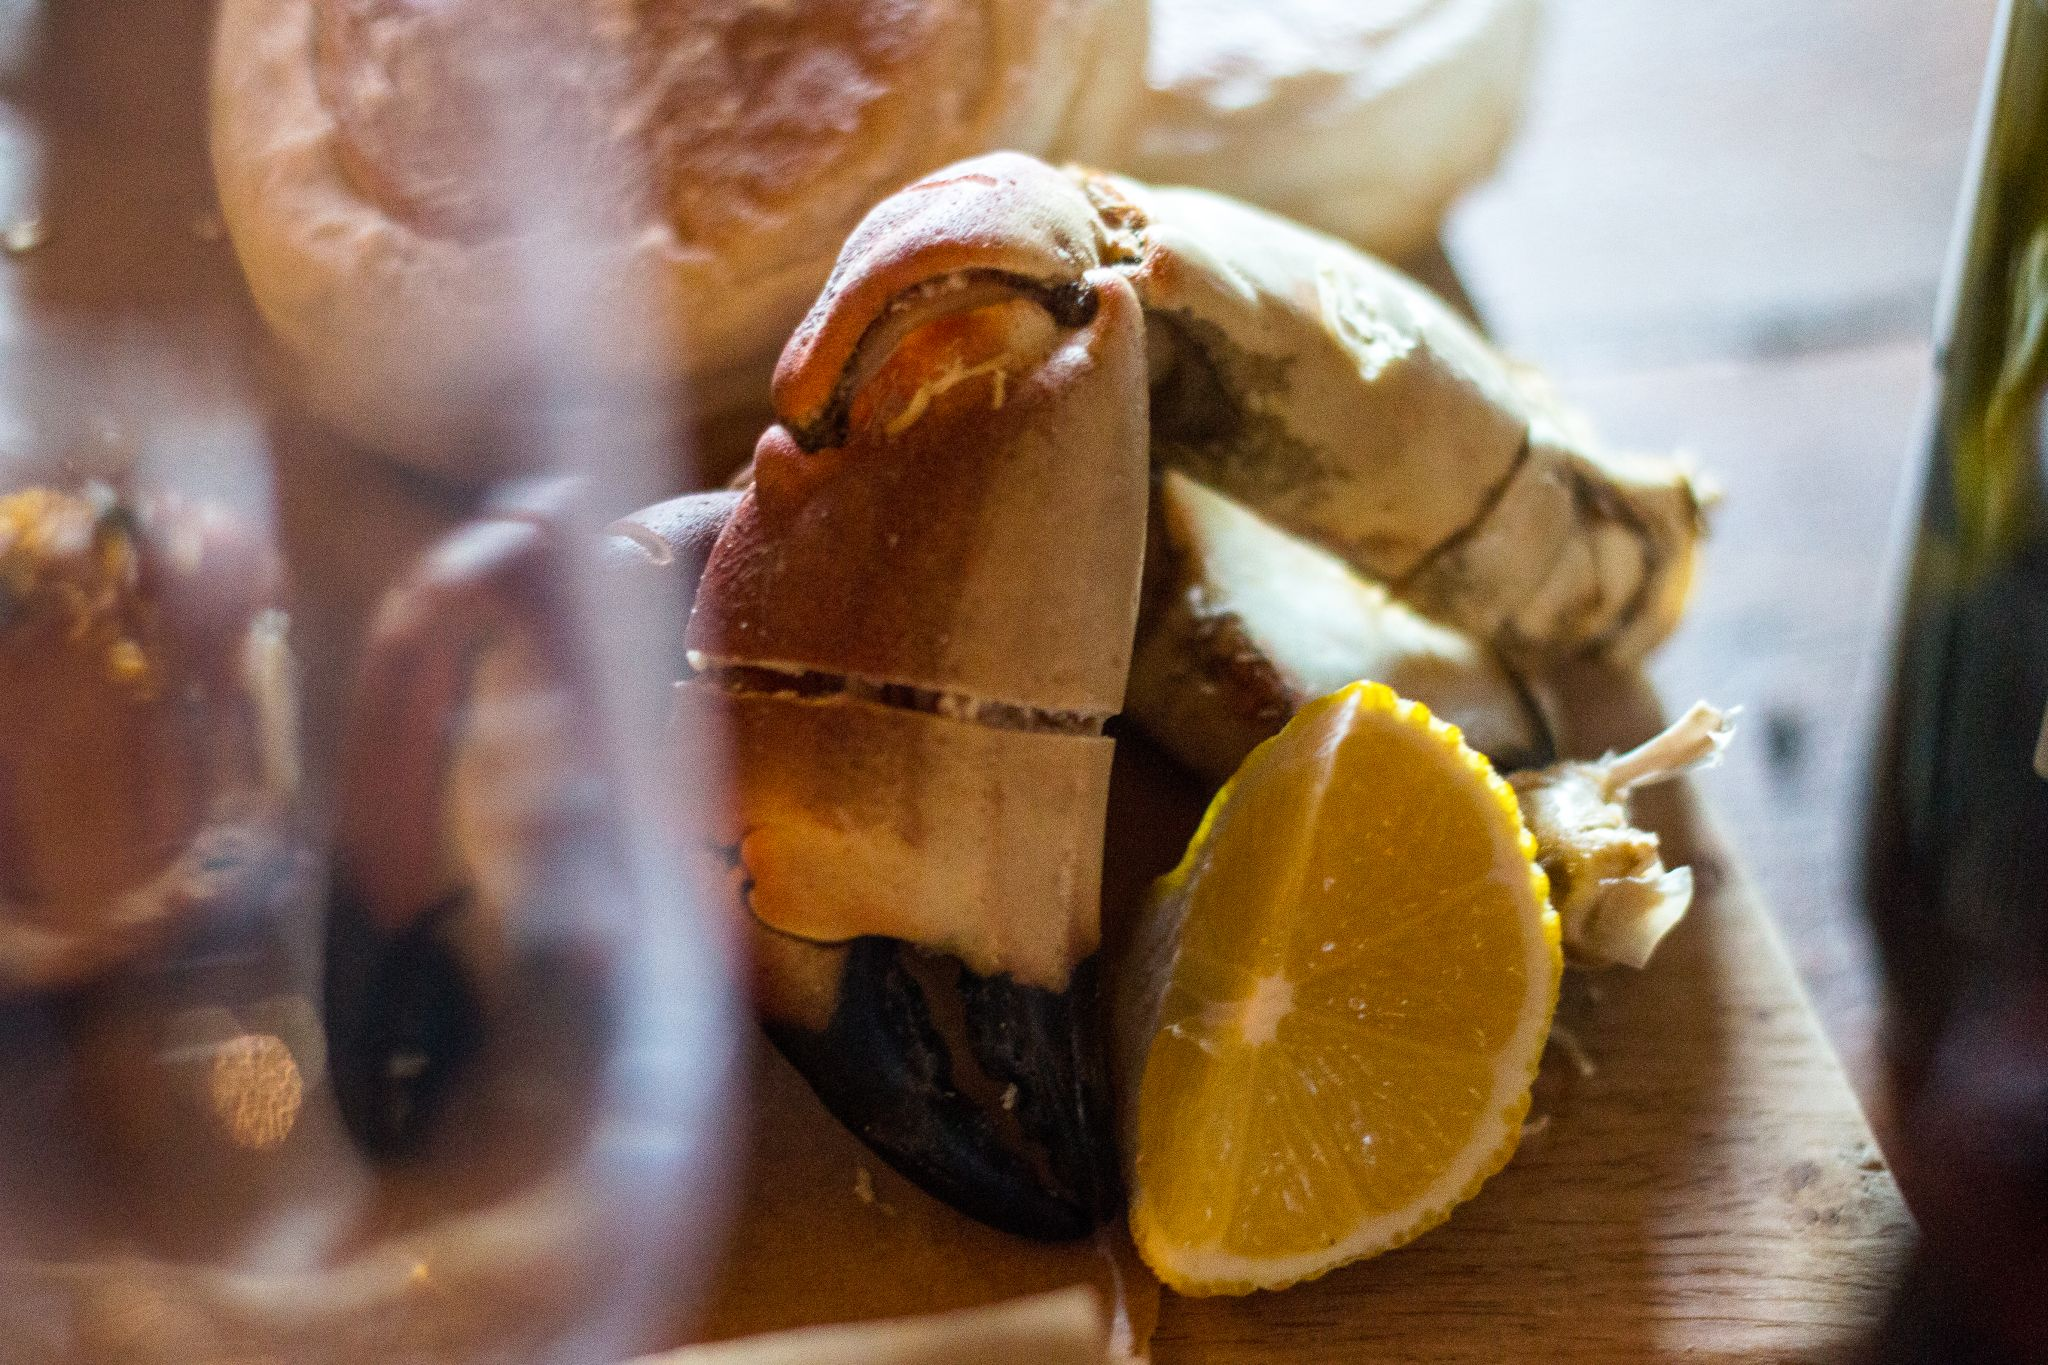 bonded warehouse food photography sunderland crab claw